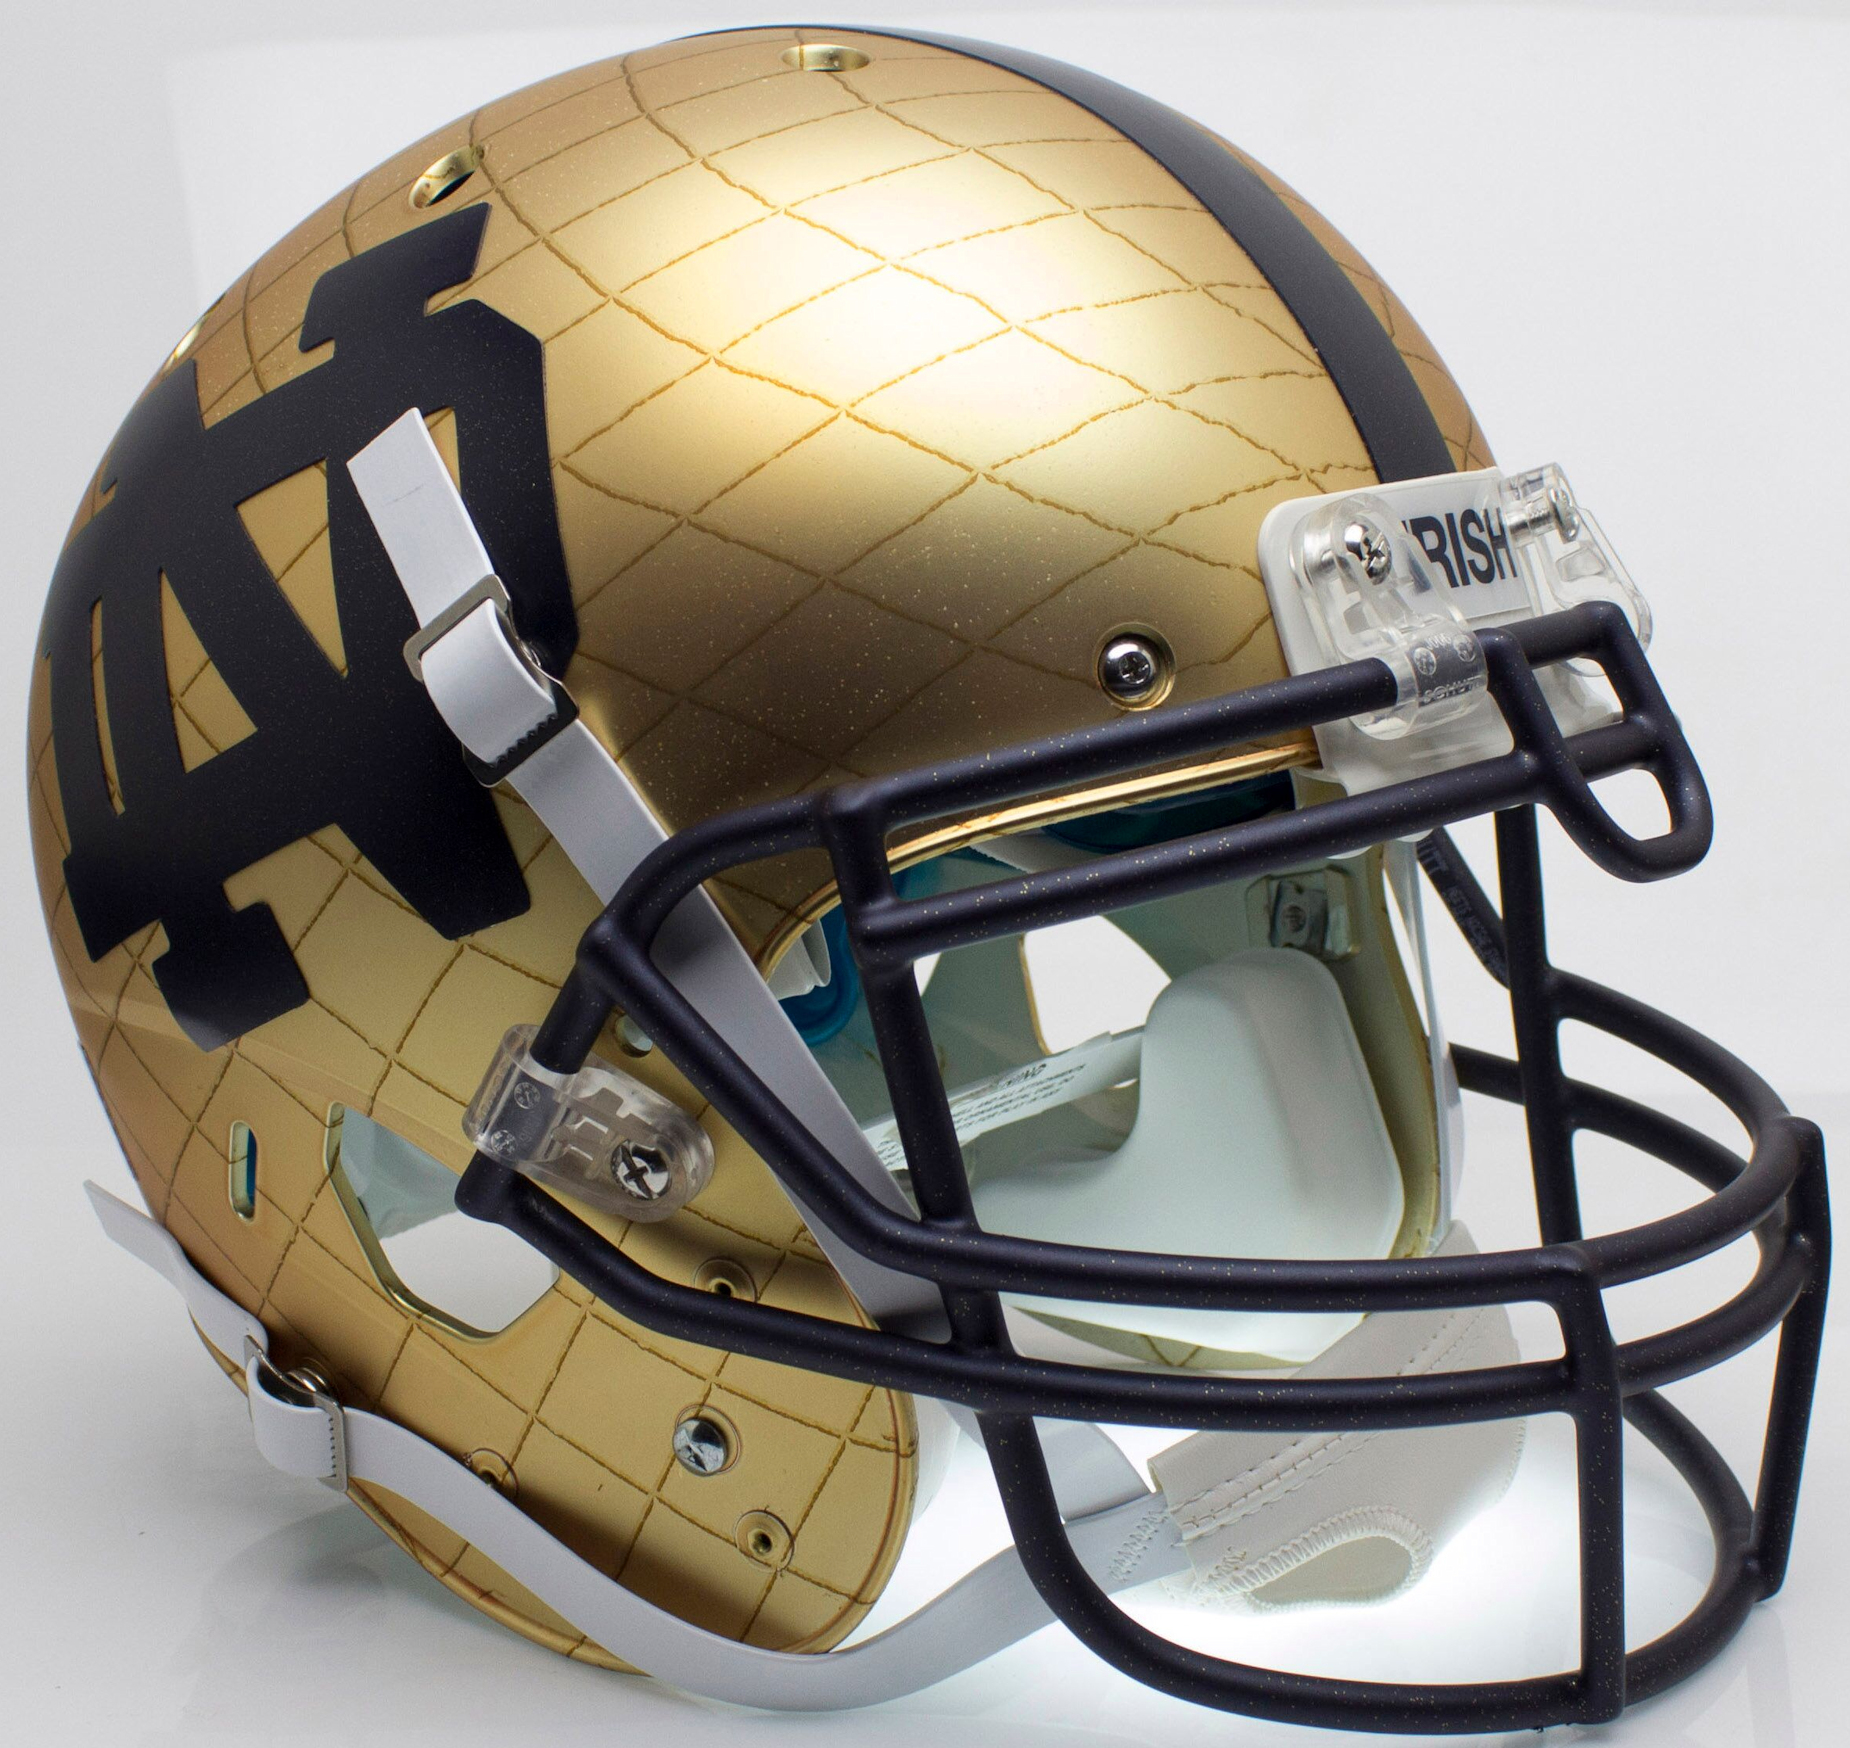 Notre Dame Fighting Irish Authentic College XP Football Helmet Schutt <B>2014 HydroSkin Indianapolis</B>